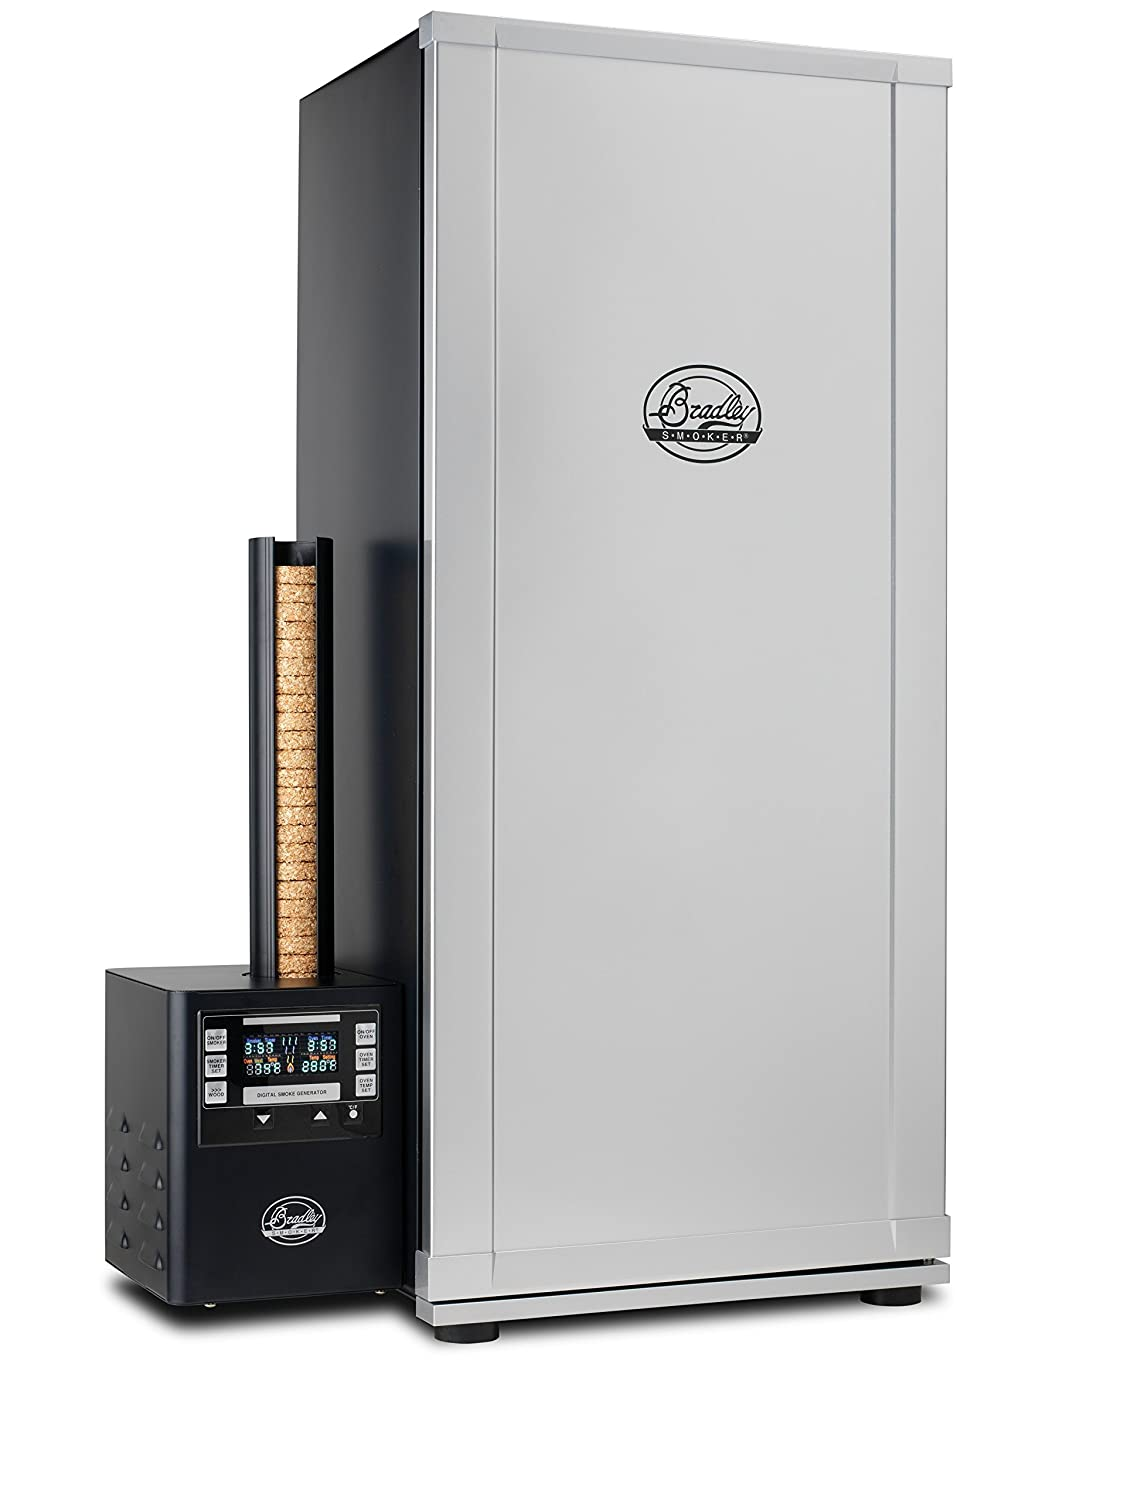 Bradley Smoker BTDS76P – Best electric smoker